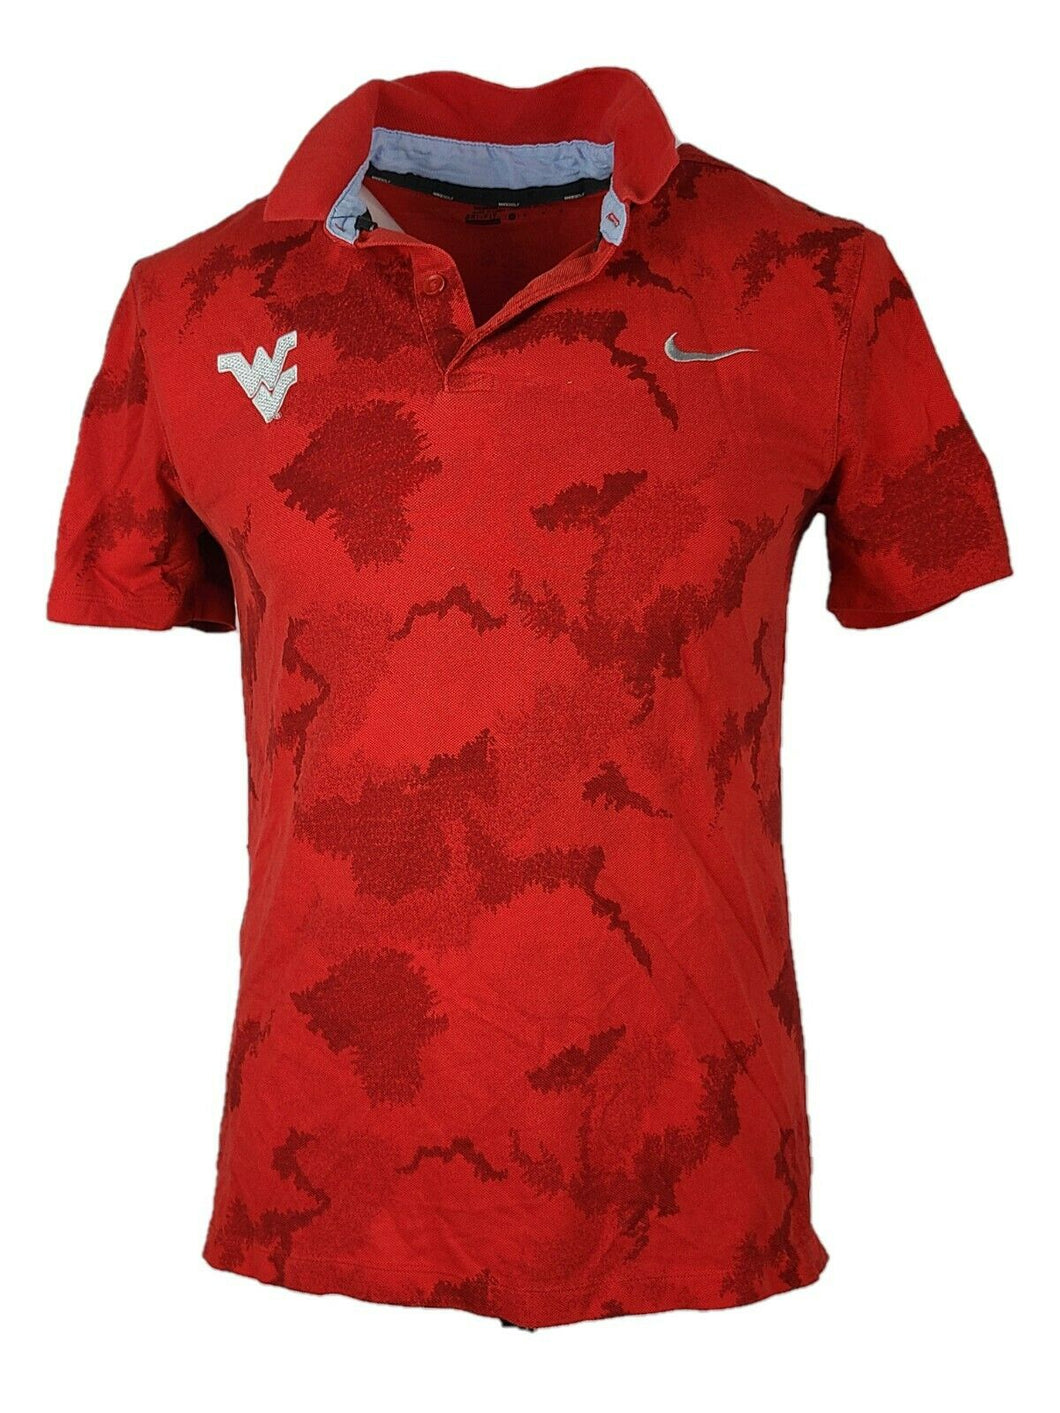 Men's Polo Nike Golf Dri-Fit Short Sleeve Shirt Size M Color Red Modern Fit